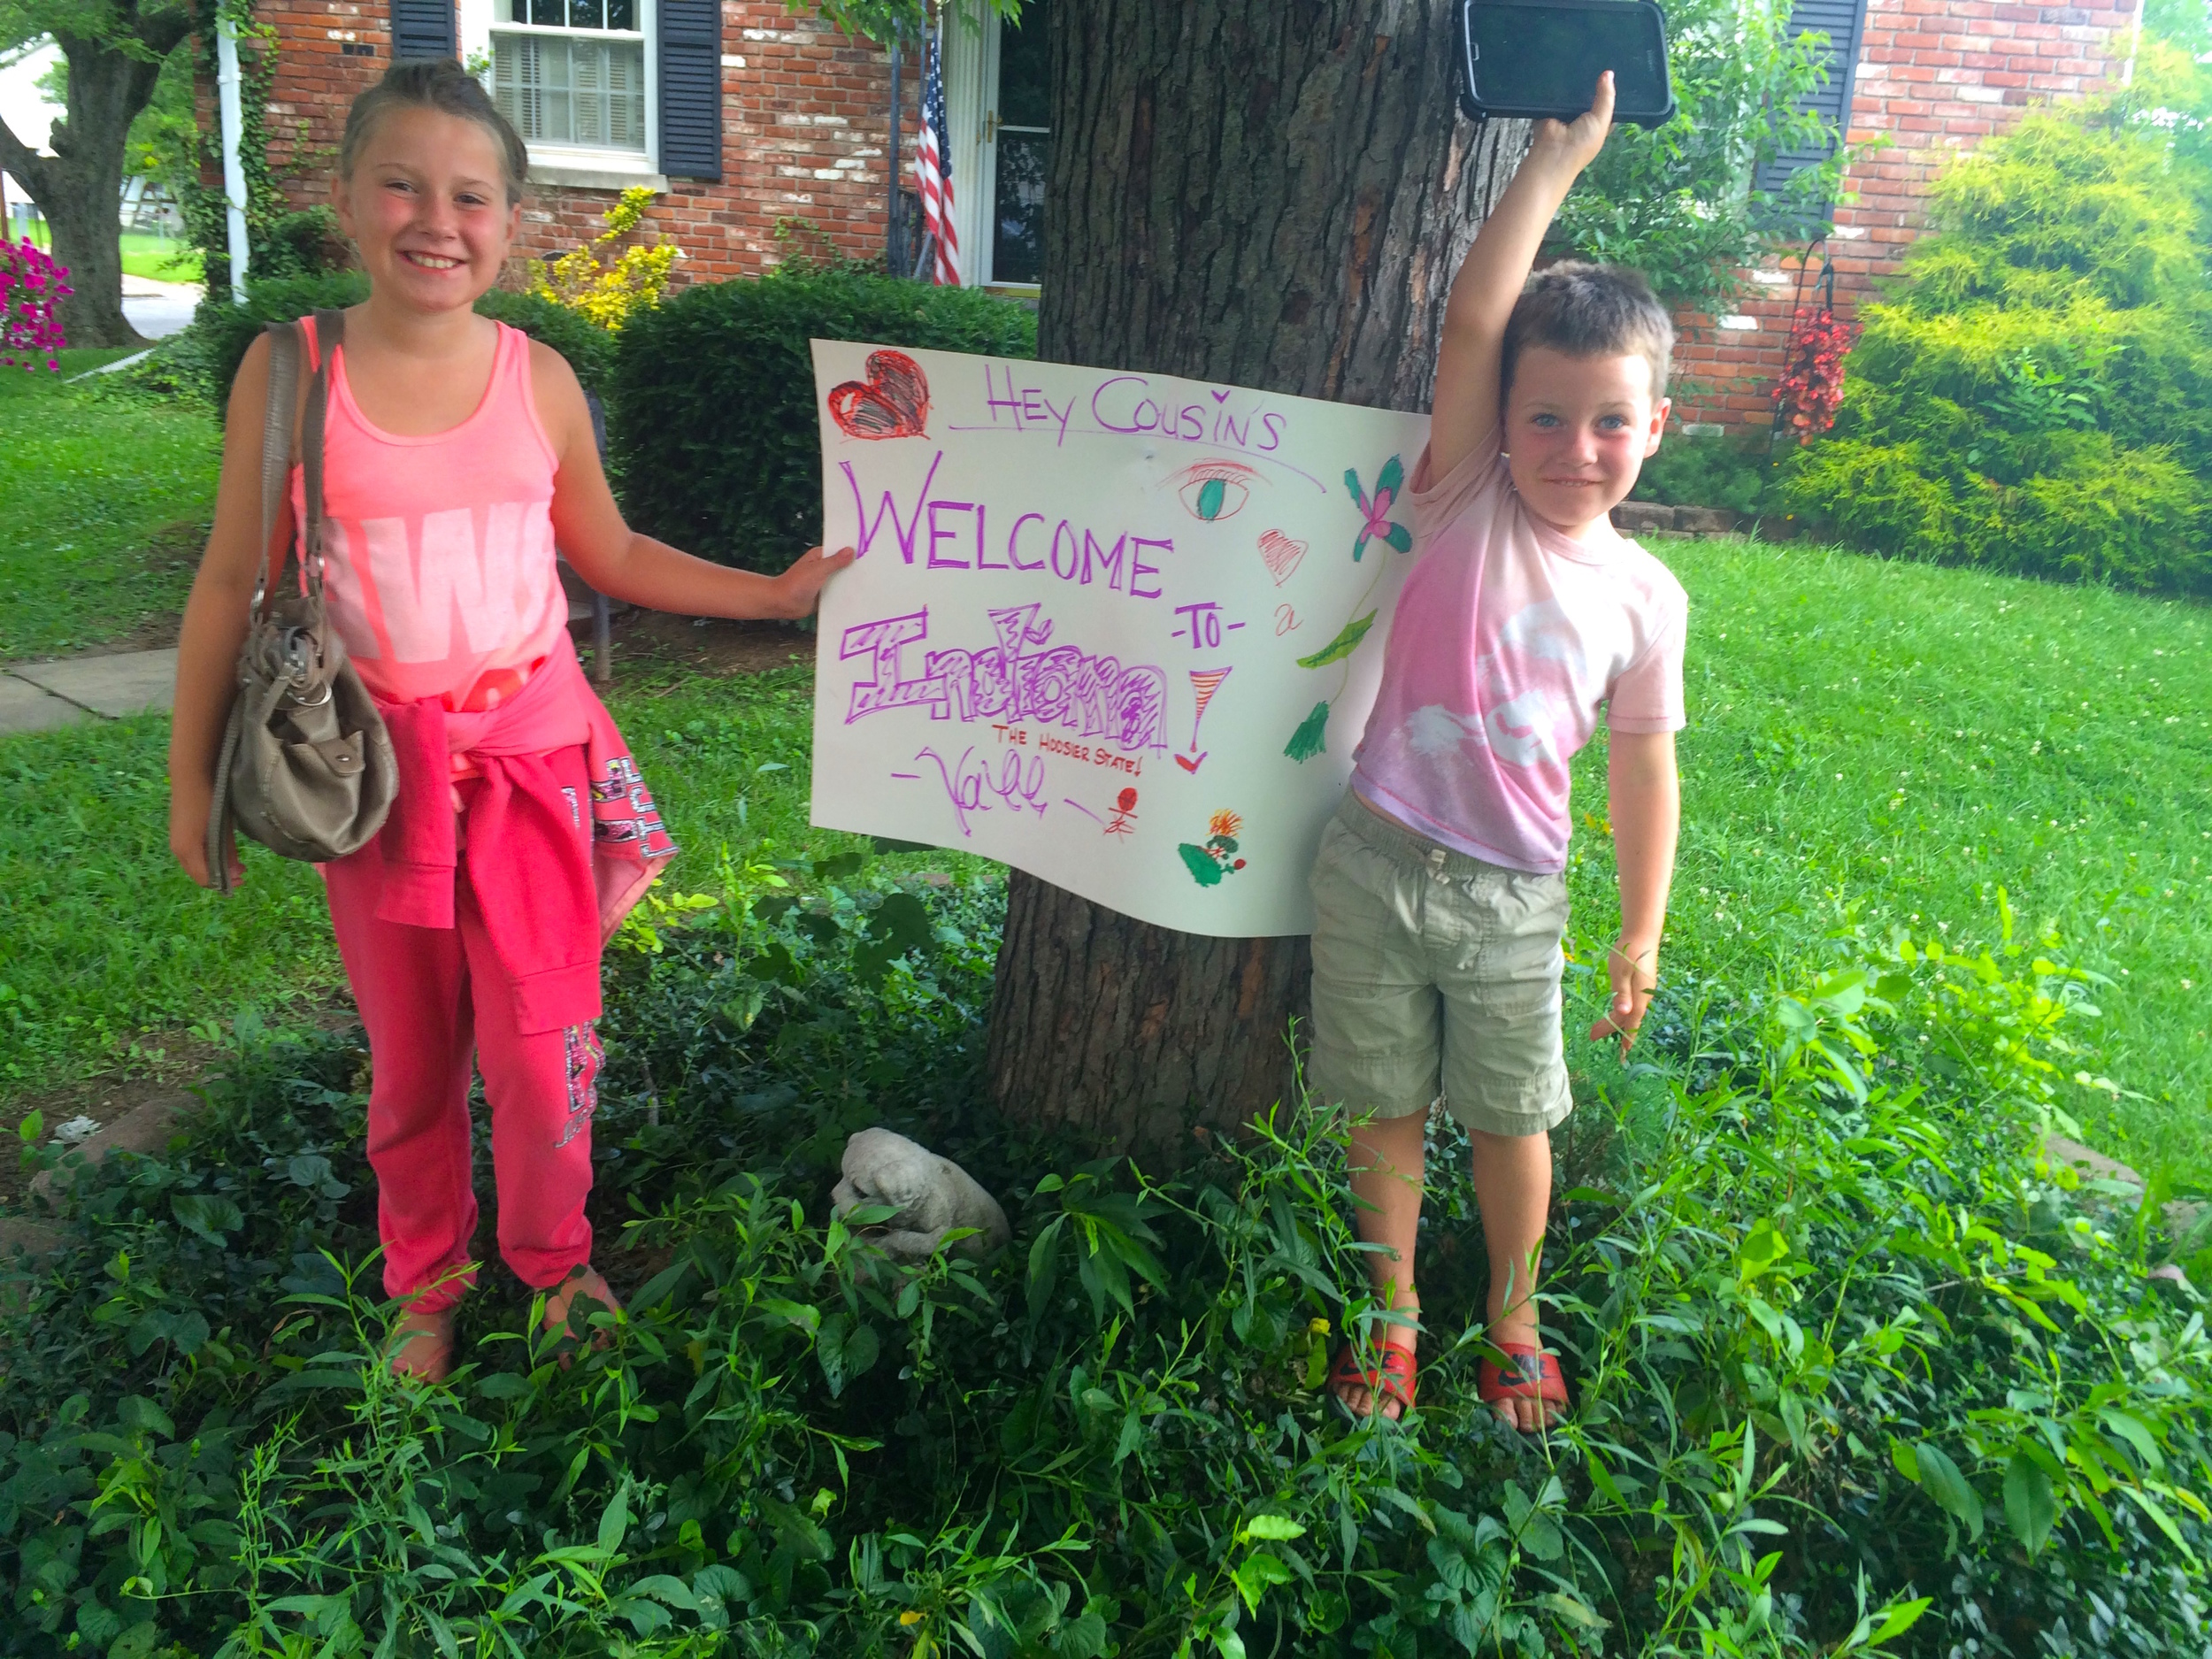 Gracie & Gavin made a wonderful welcoming committee.